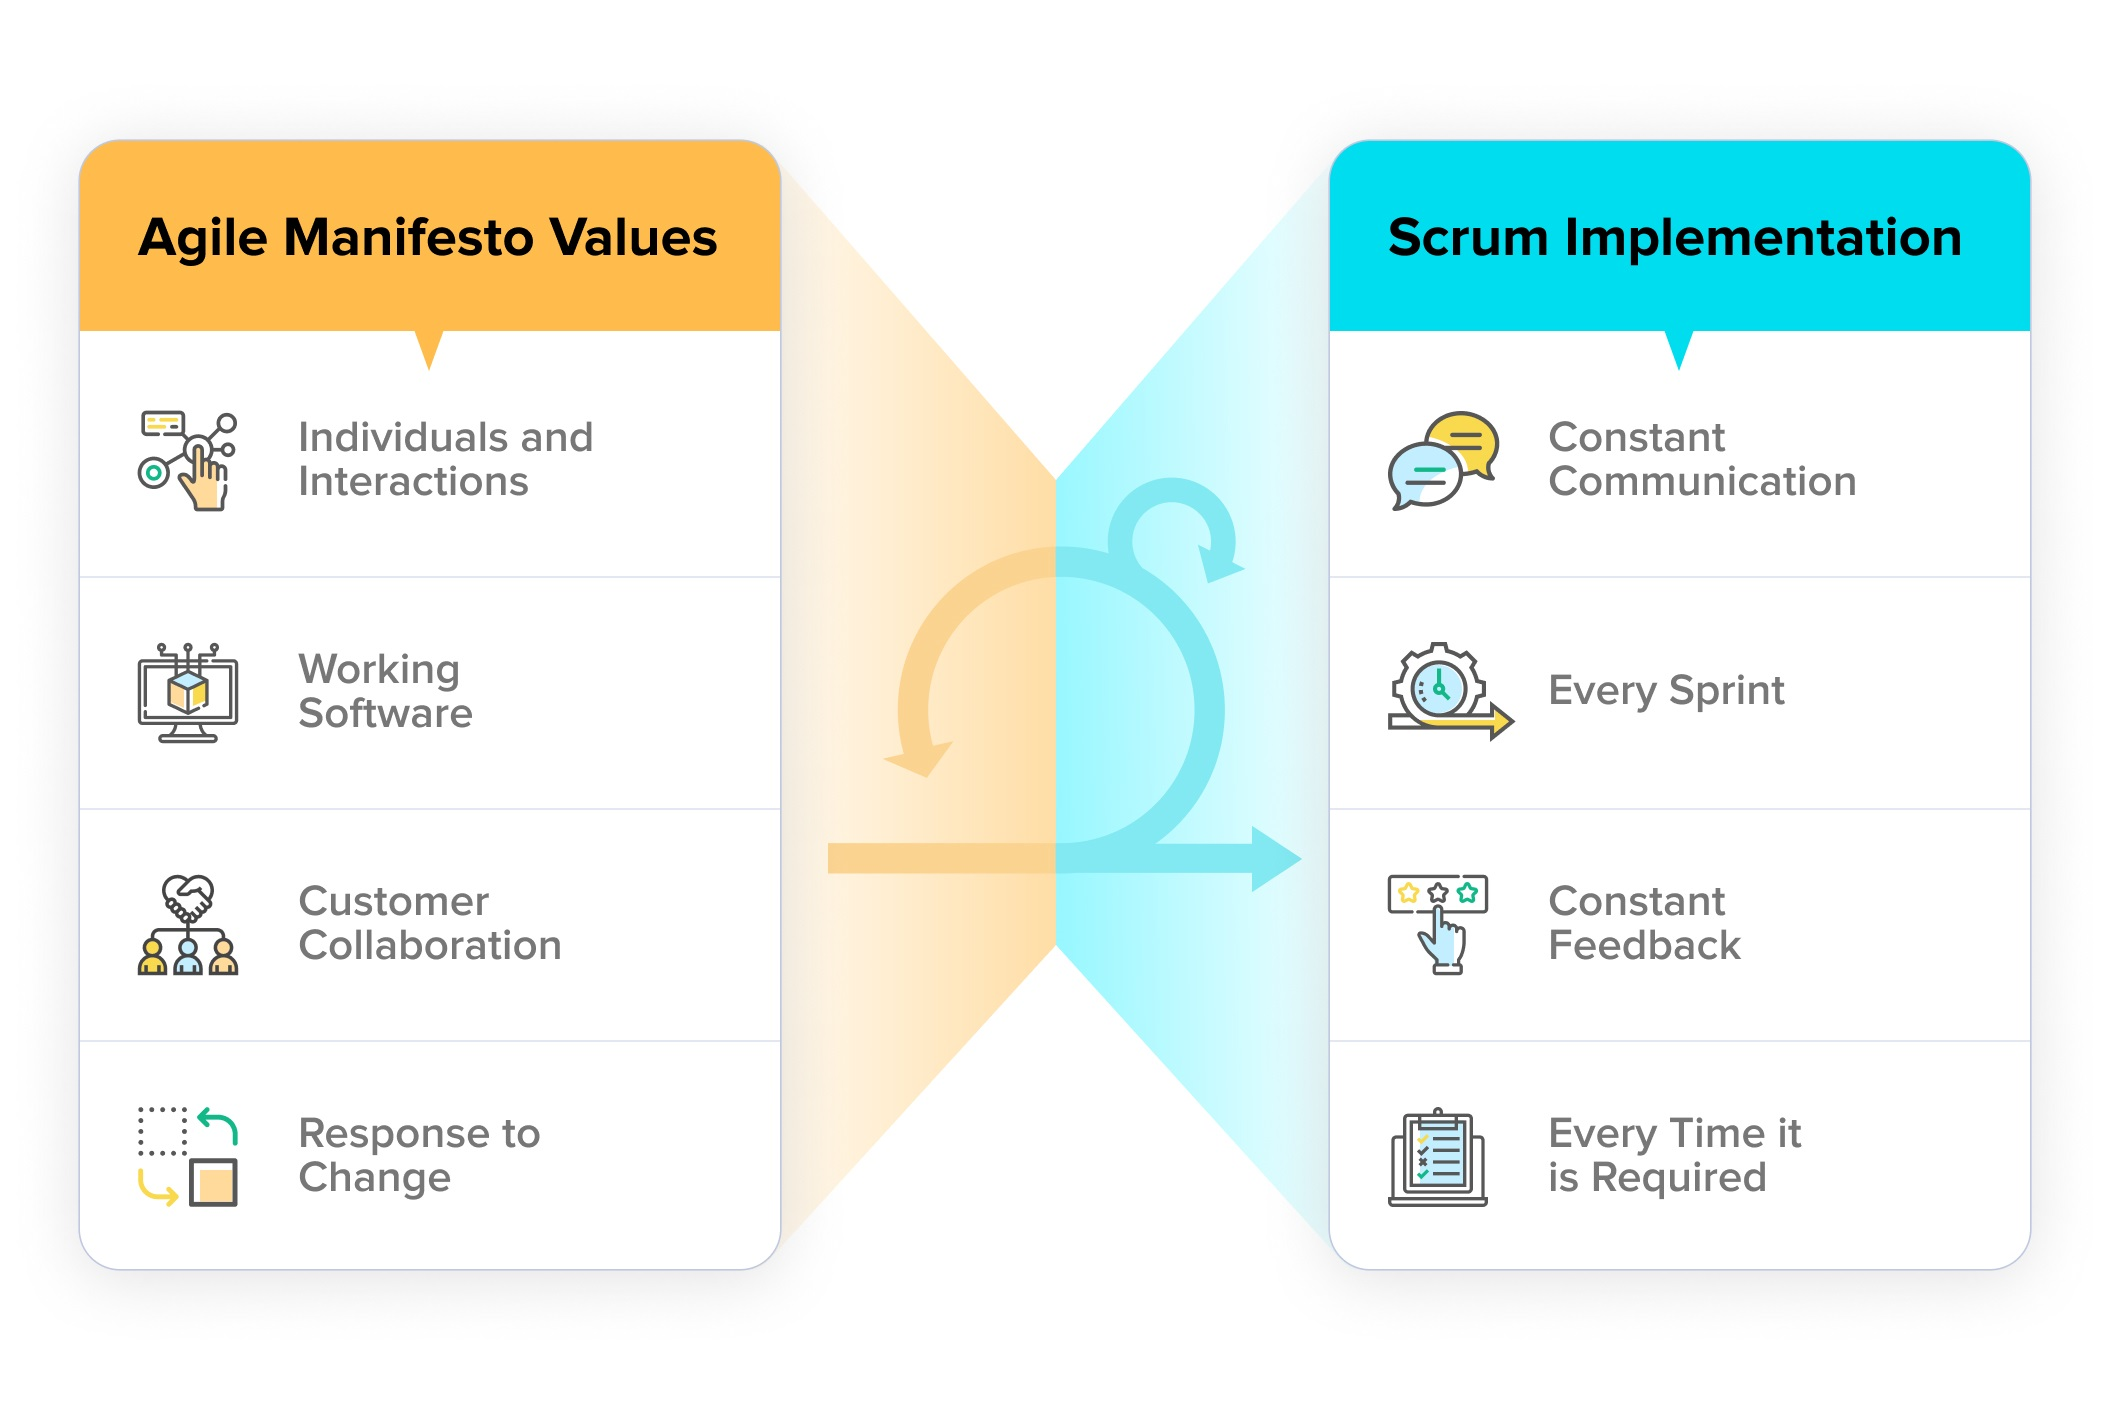 Agile Development vs Scrum